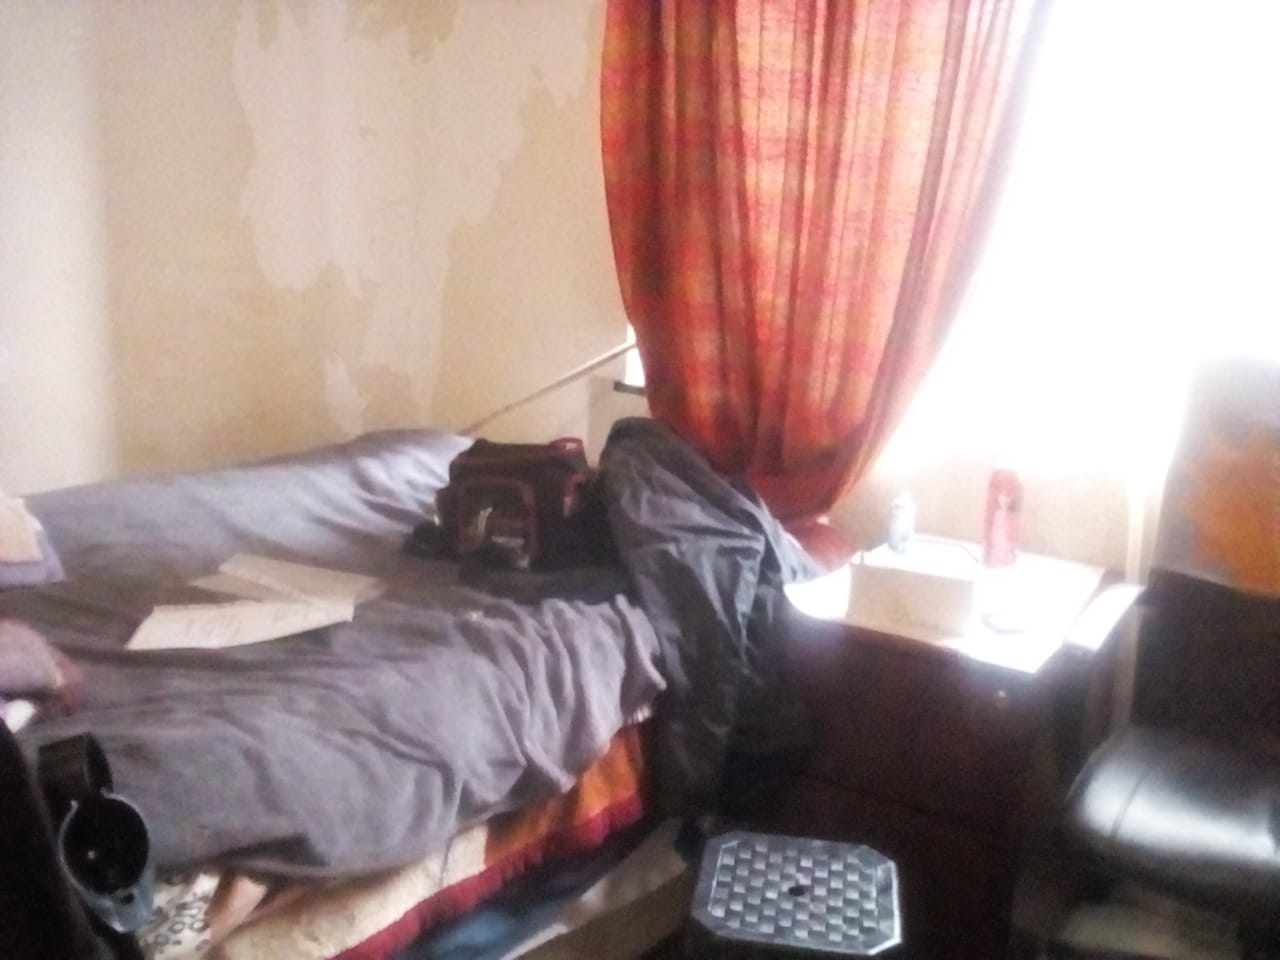 Apartment in Berea & Surrounds - WhatsApp Image 2021-07-21 at 5.40.14 PM (1).jpeg